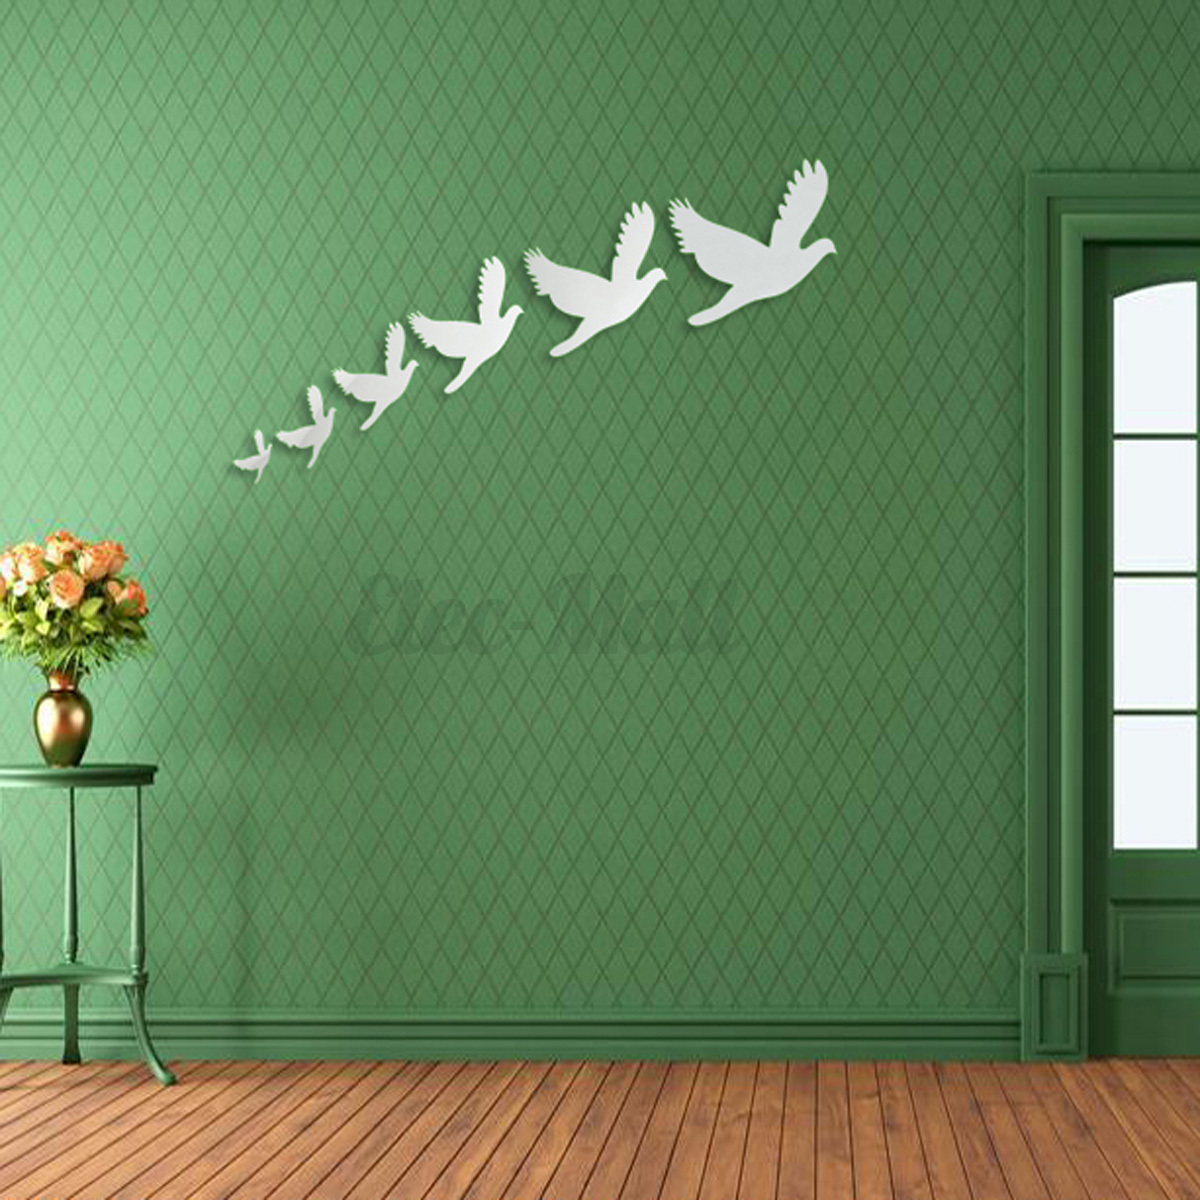 Removable diy 3d mirror surface wall stickers mural art - Wall sticker ideas for living room ...